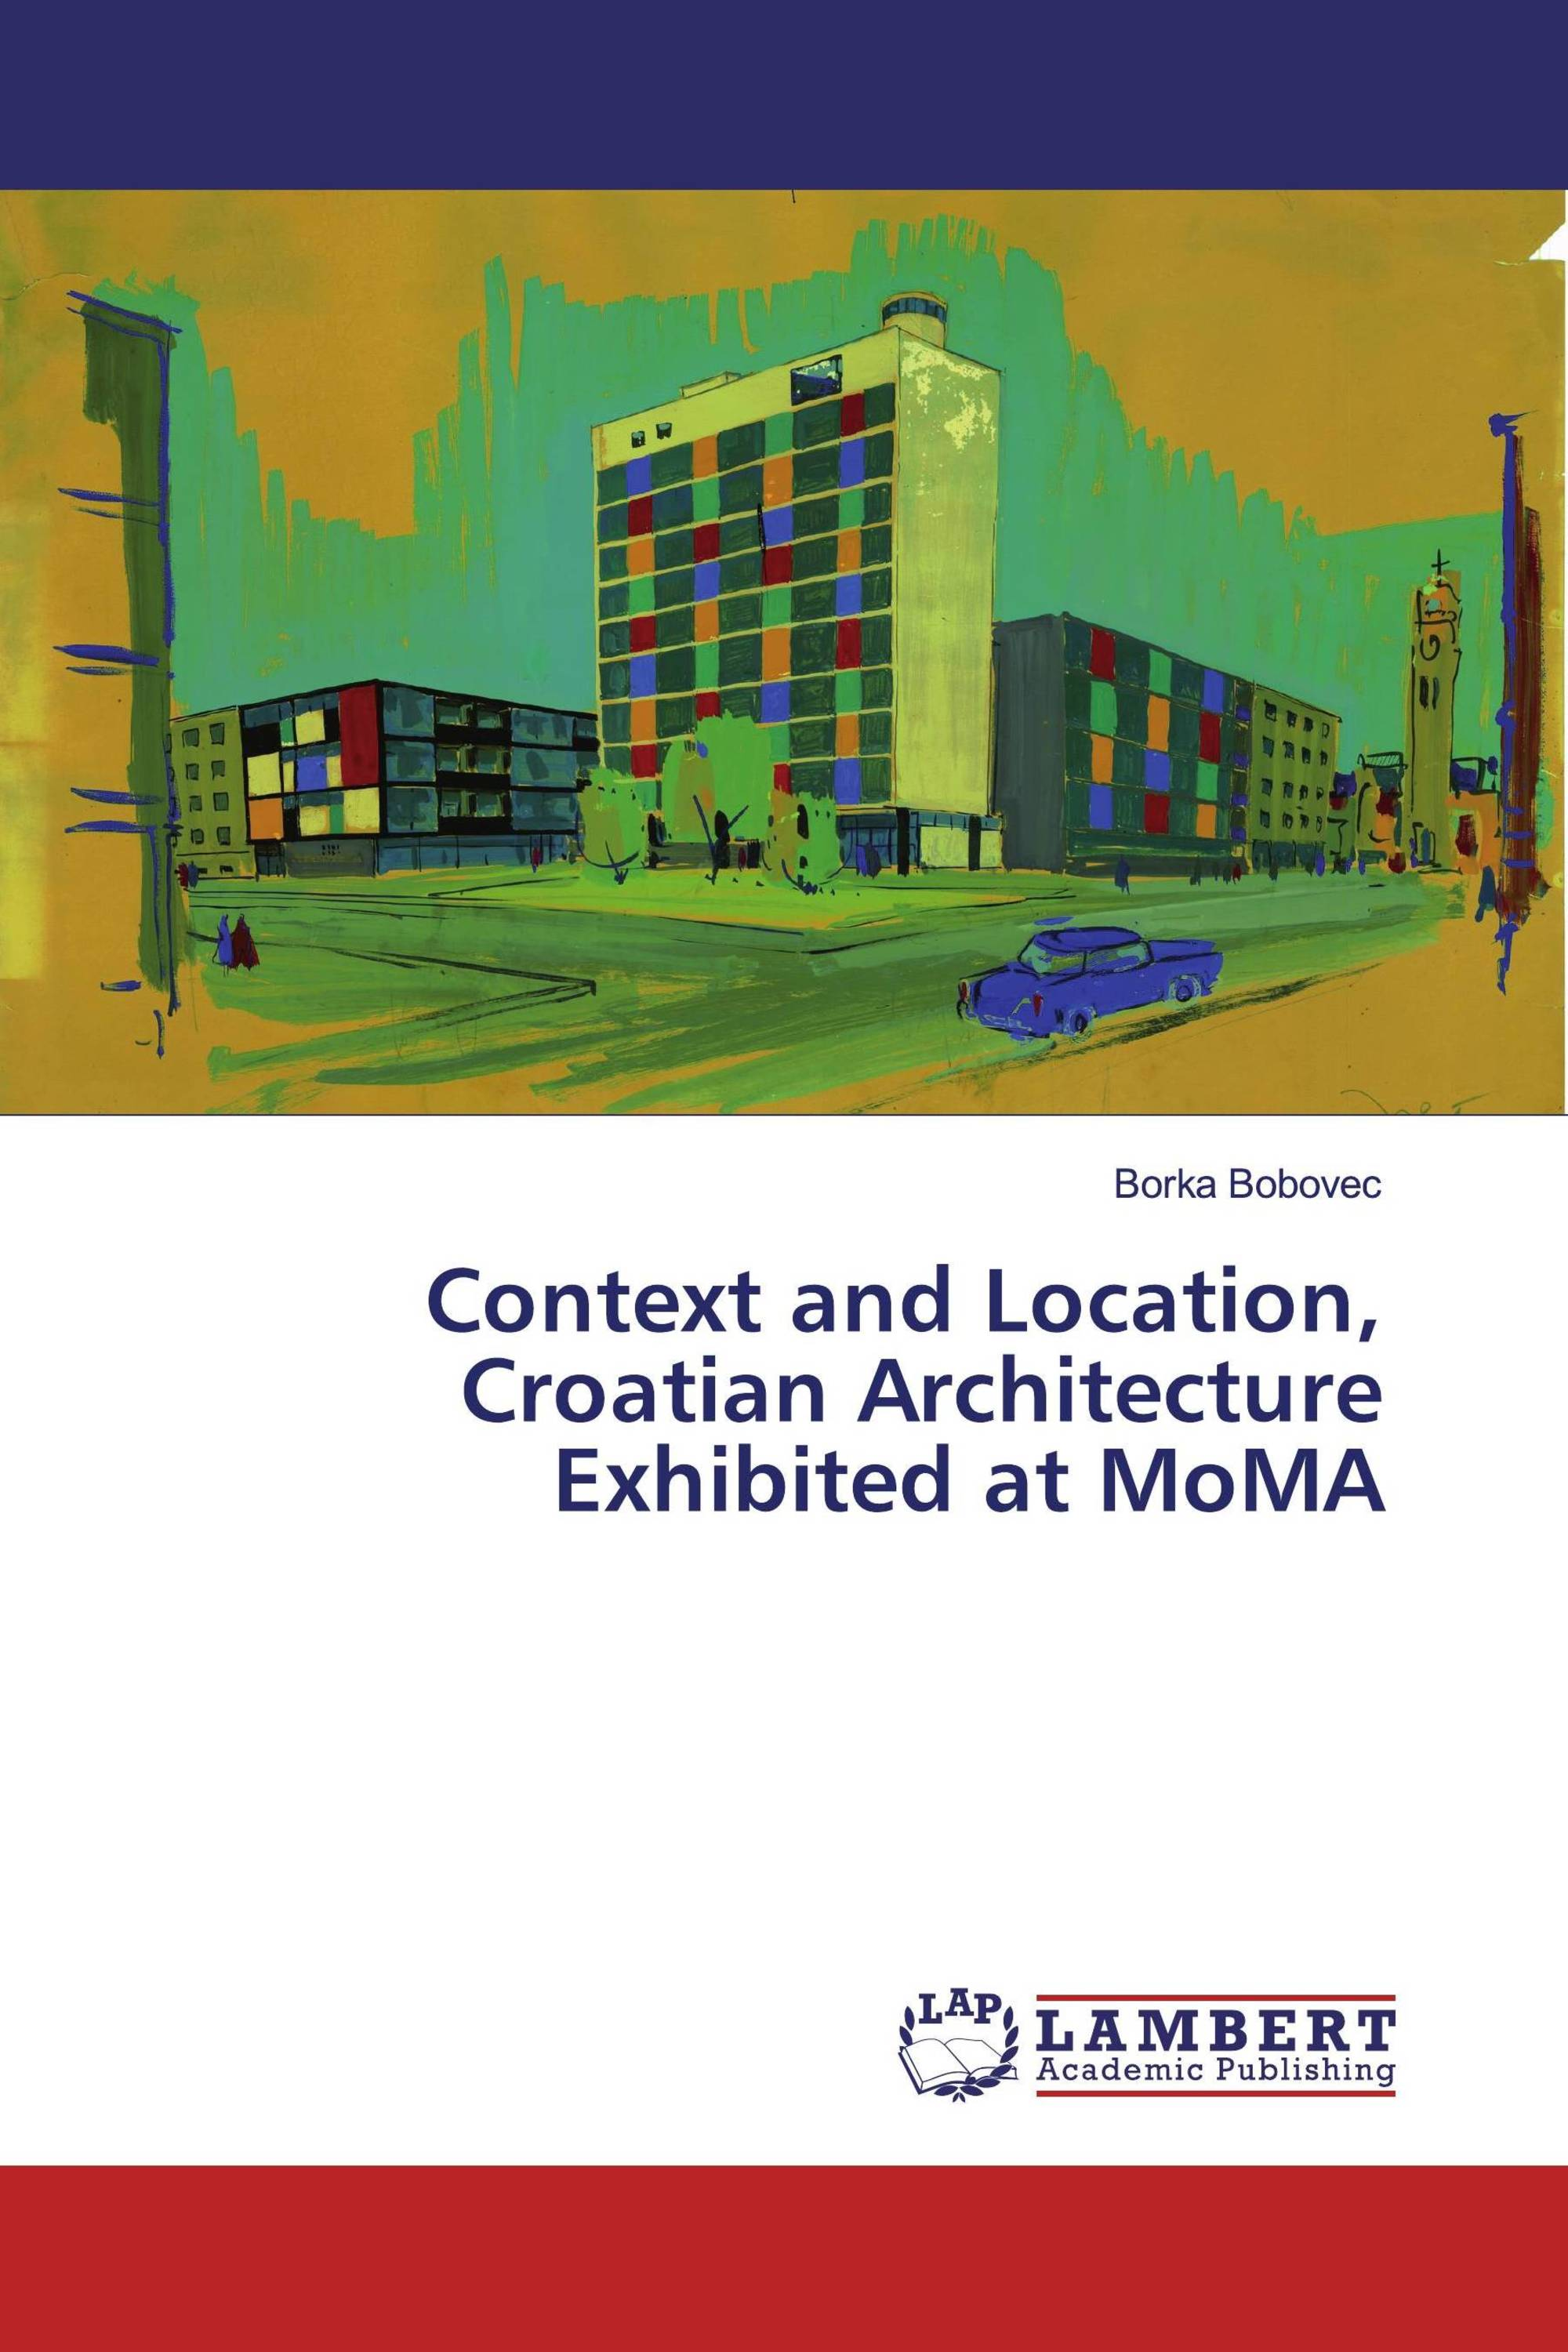 Context and Location, Croatian Architecture Exhibited at MoMA